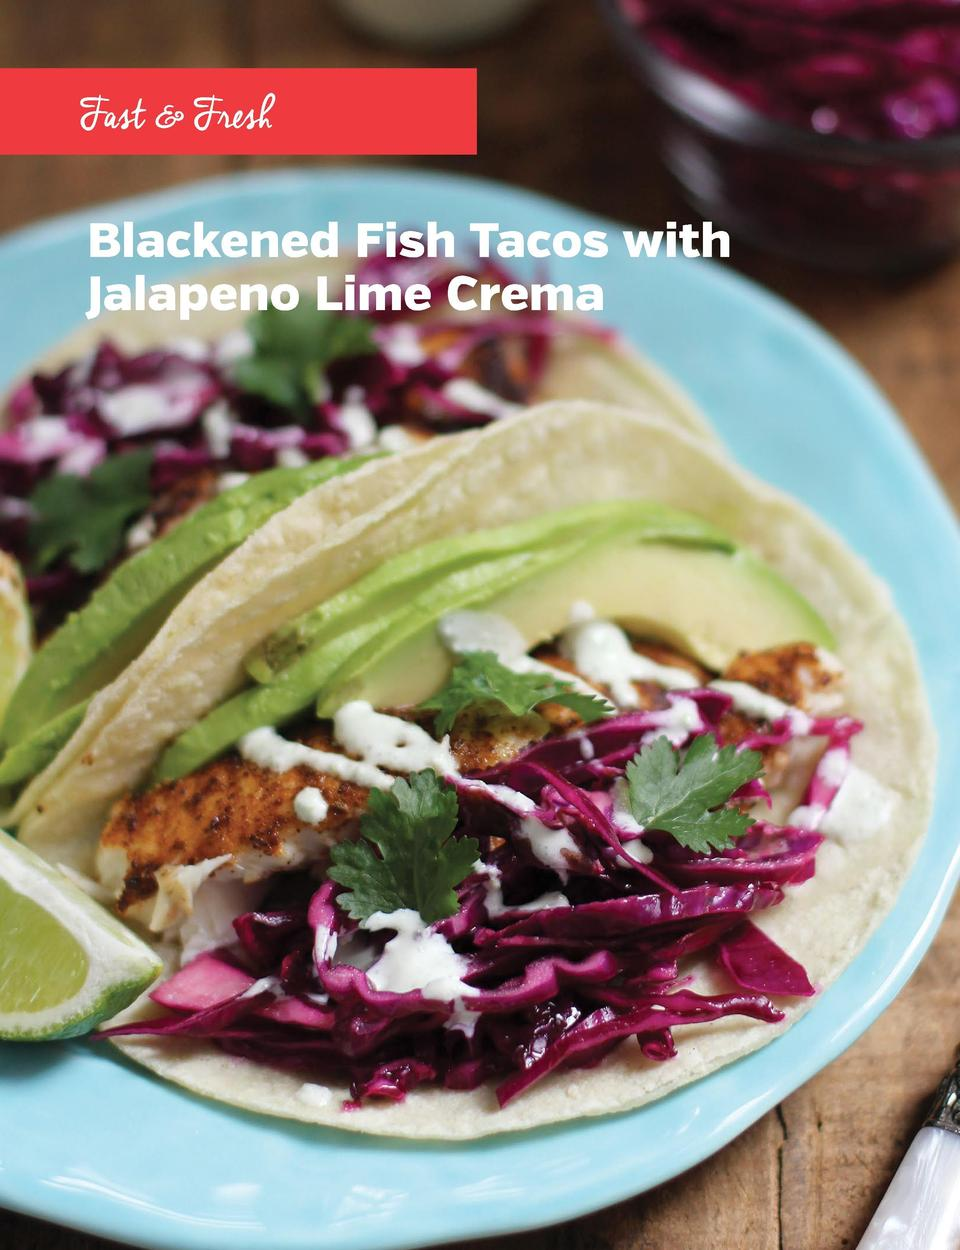 Sha r pen You r A ppetite     Fast   Fresh  Blackened Fish Tacos with Jalapeno Lime Crema  Blackened Fish Tacos with Jala...